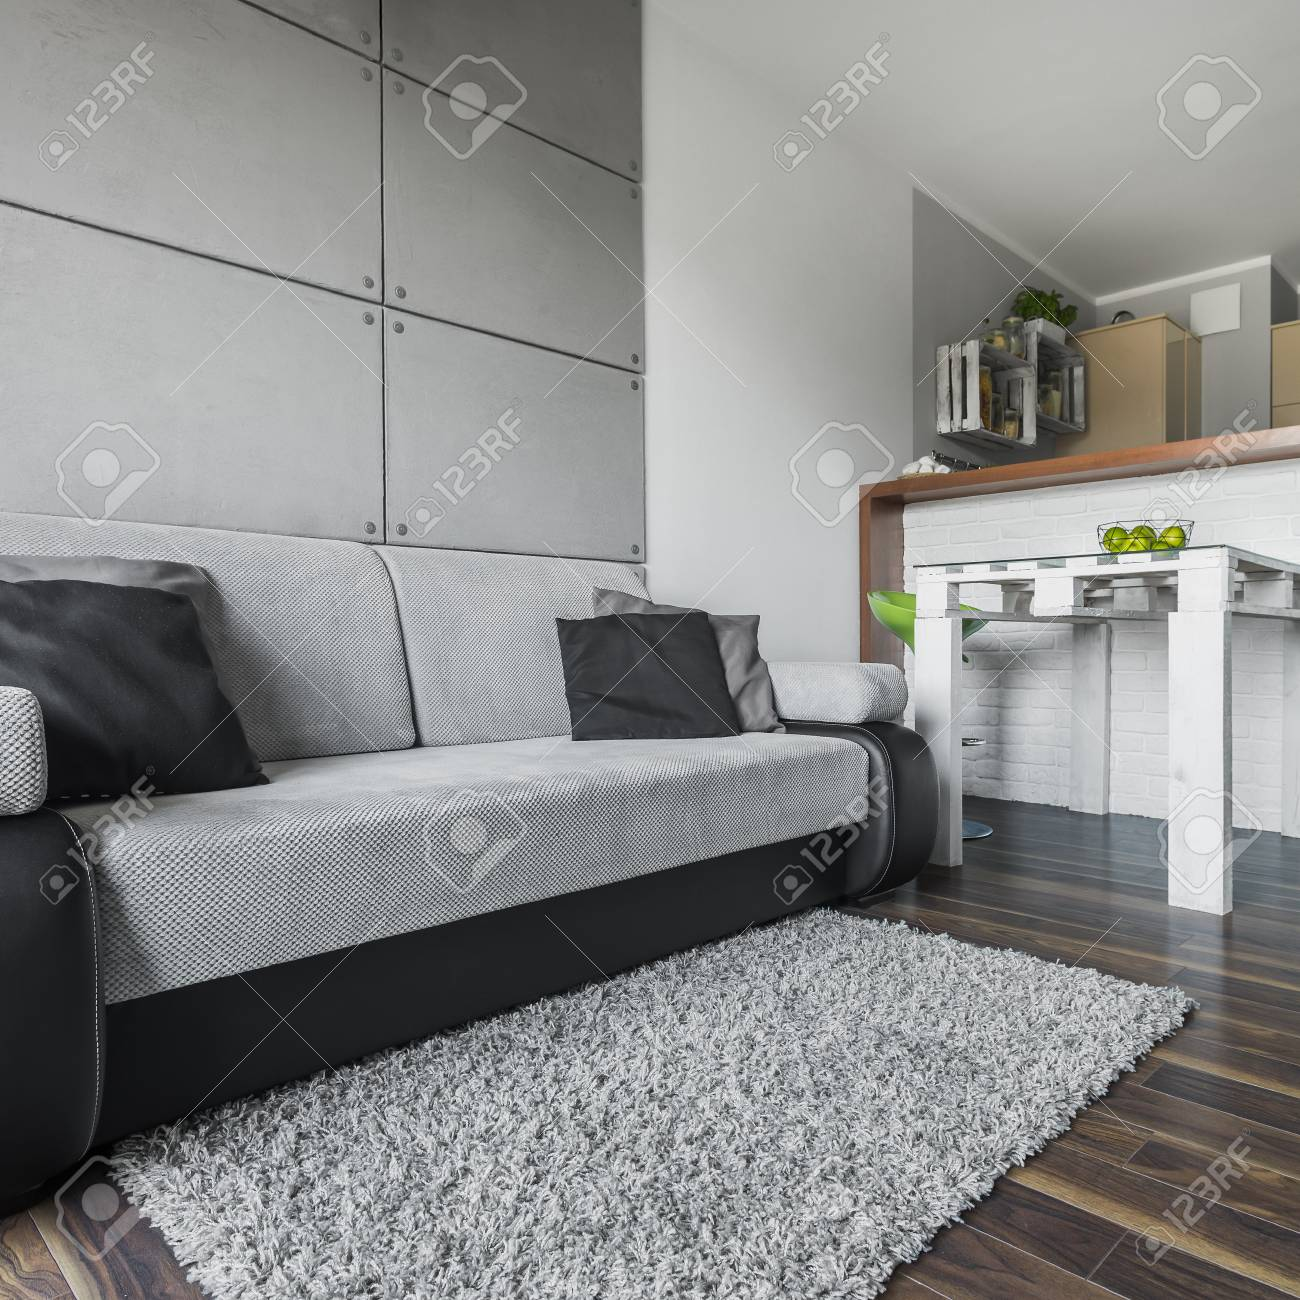 Big And Cozy Grey Sofa In Modern Apartment With Small Dining.. Stock ...